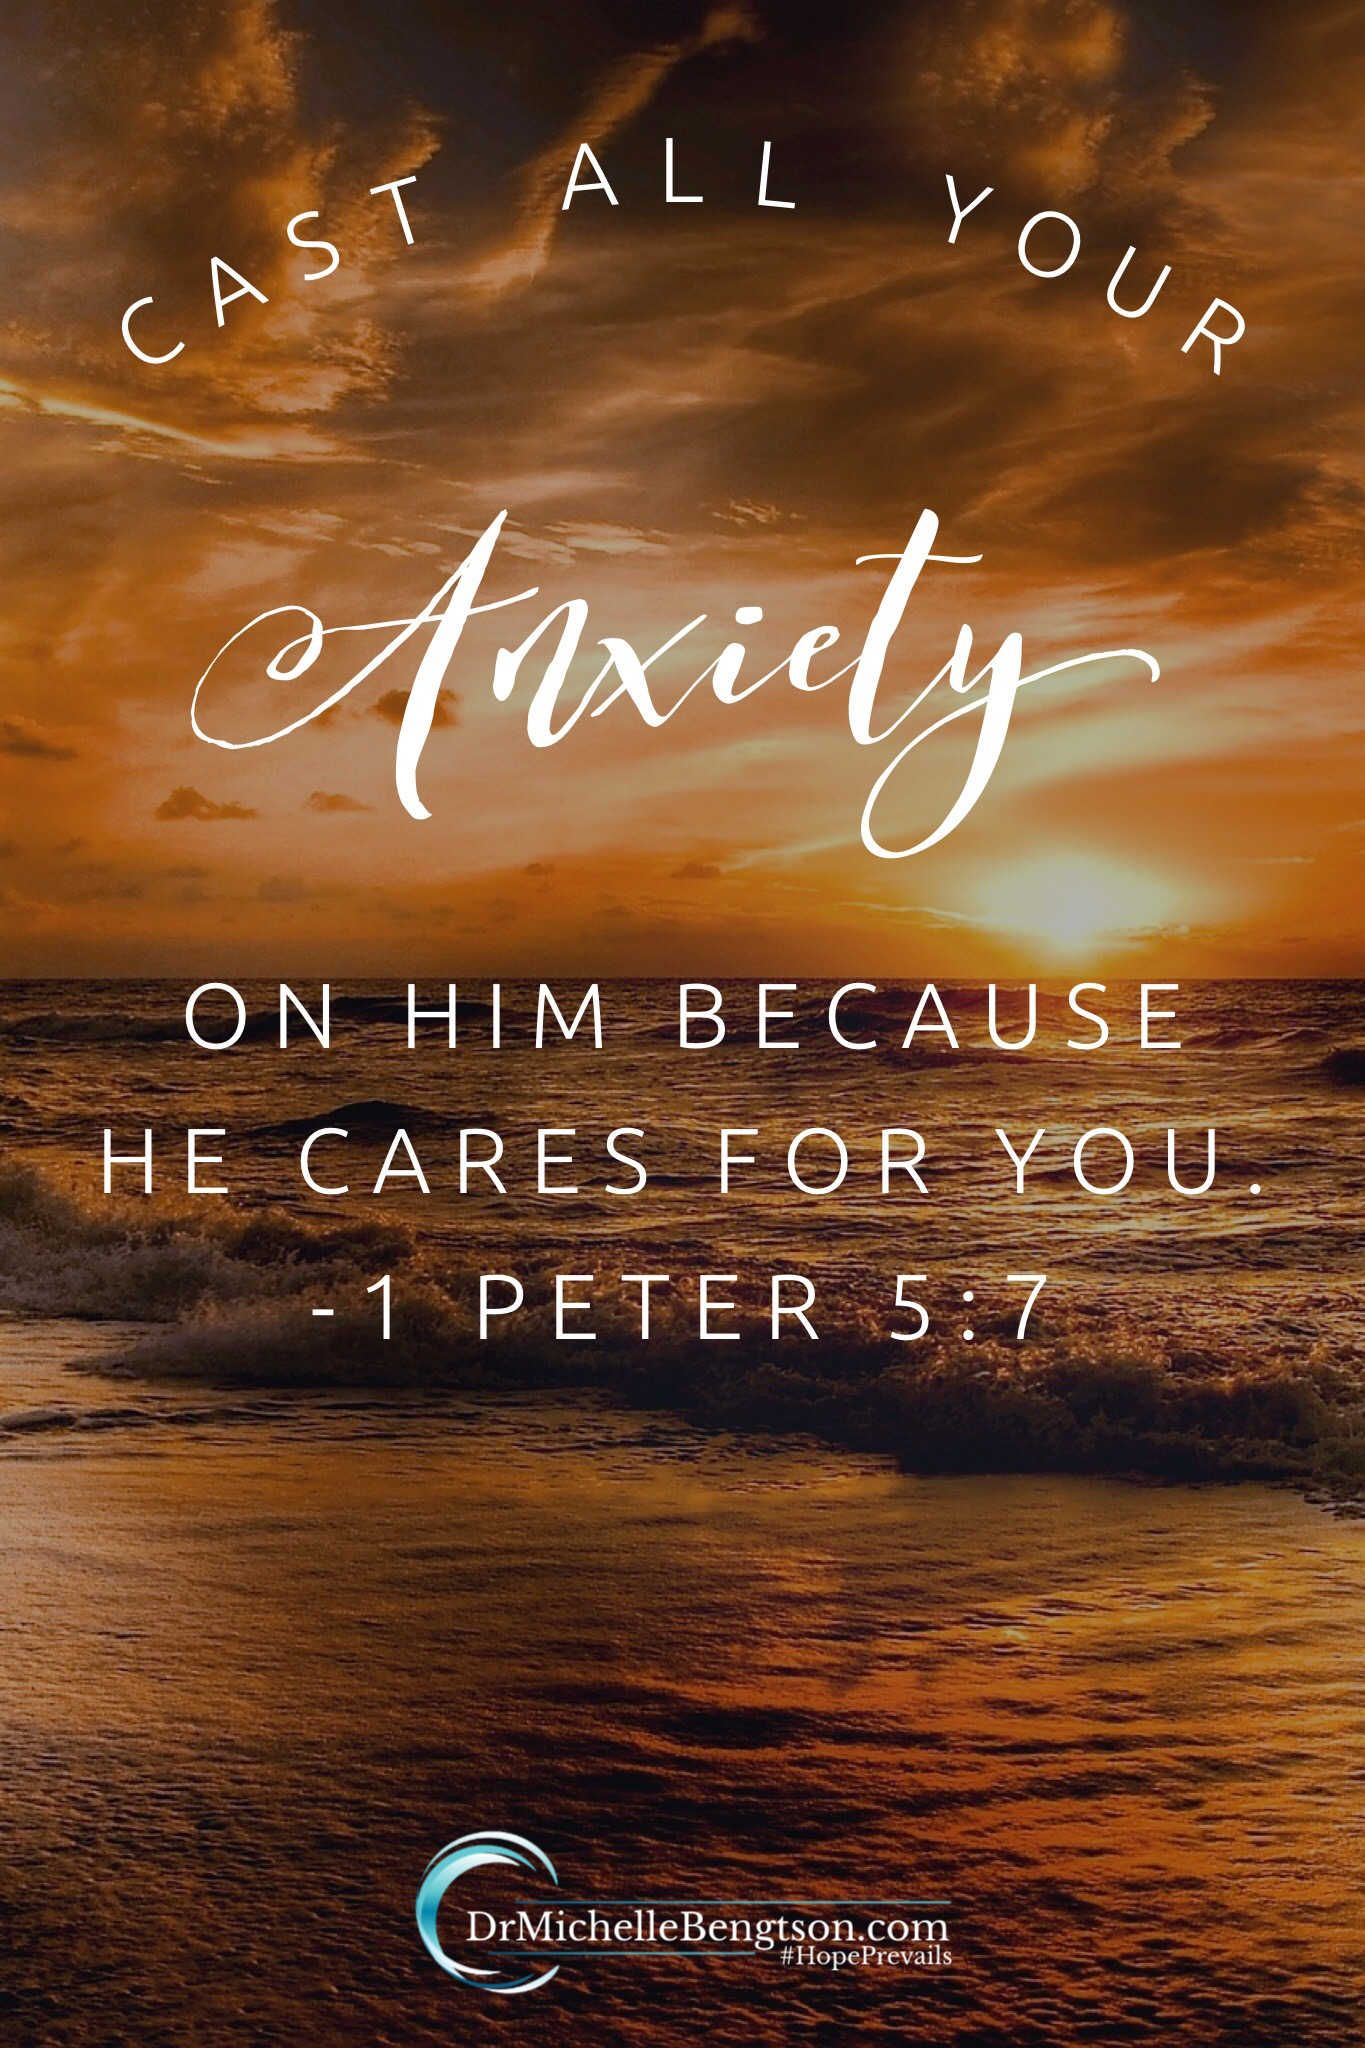 """Weariness is a sure sign we are carrying things we weren't meant to carry. At a time when I was overwhelmed by a lengthy to-do list, God spoke this scripture to my heart: """"Cast all your anxiety on him because he cares for you"""" (1 Peter 5:7). He said to cast ALL my anxiety on Him. Not just some, not just that which I feel comfortable with or desperate for, but all. Why? BECAUSE he cares for me. Because He cares for me I can trust Him. #Bibleverse #anxiety #encouragement"""